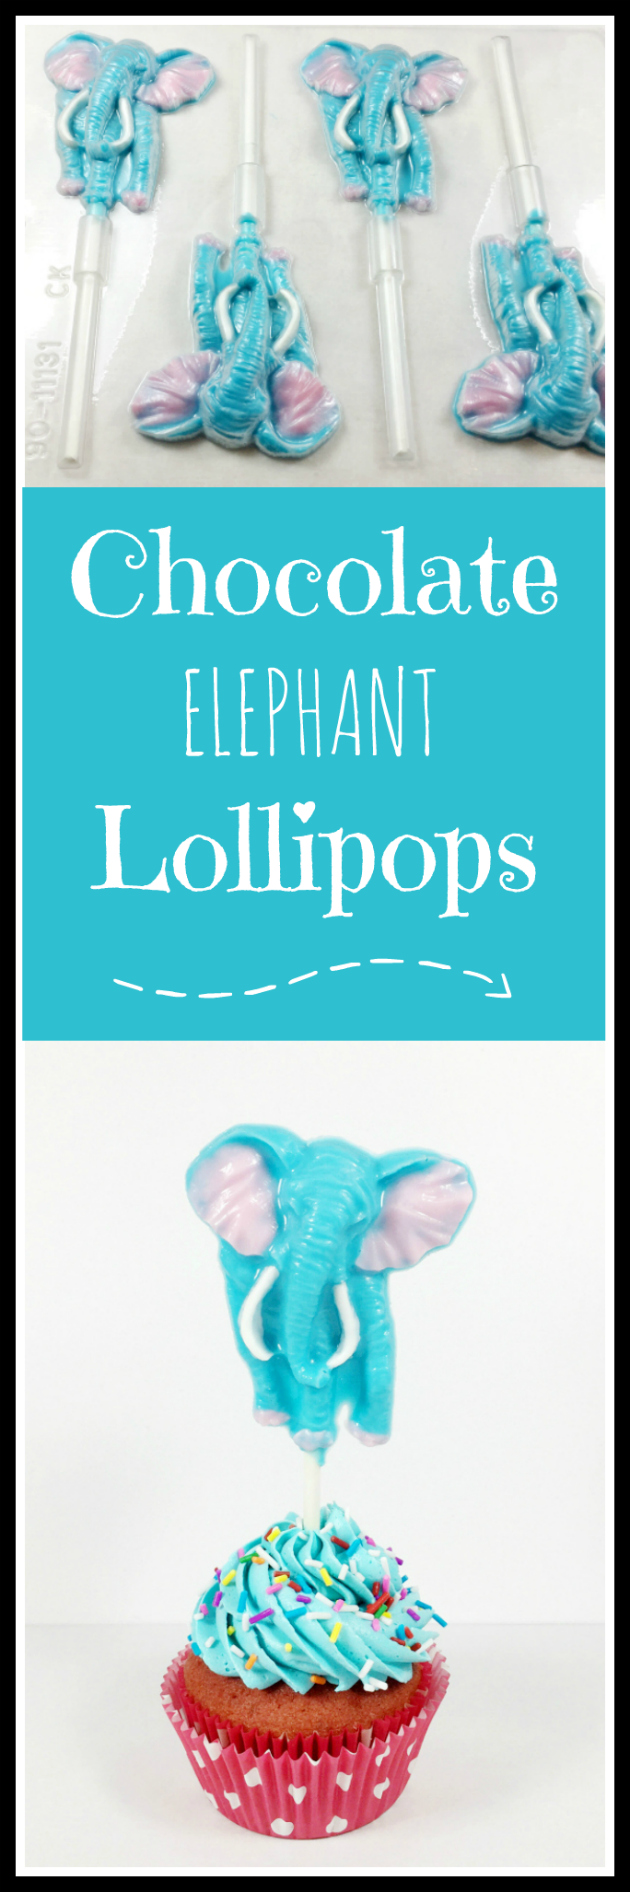 Chocolate Elephant Lollipops Tutorial